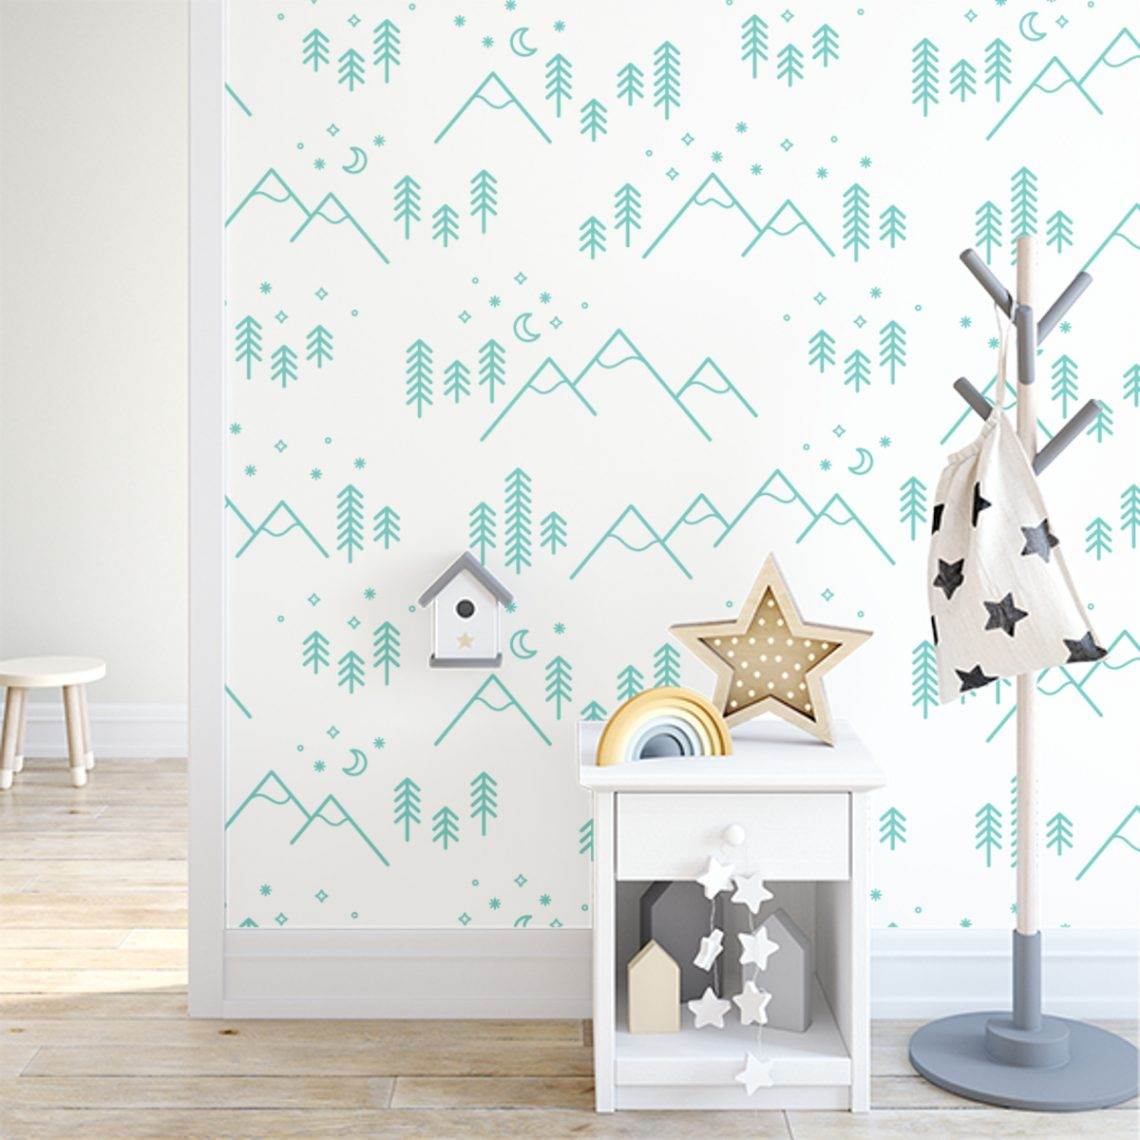 5 Super Cute Peel and Stick Wallpaper Designs Perfect For Kids' Bedroom